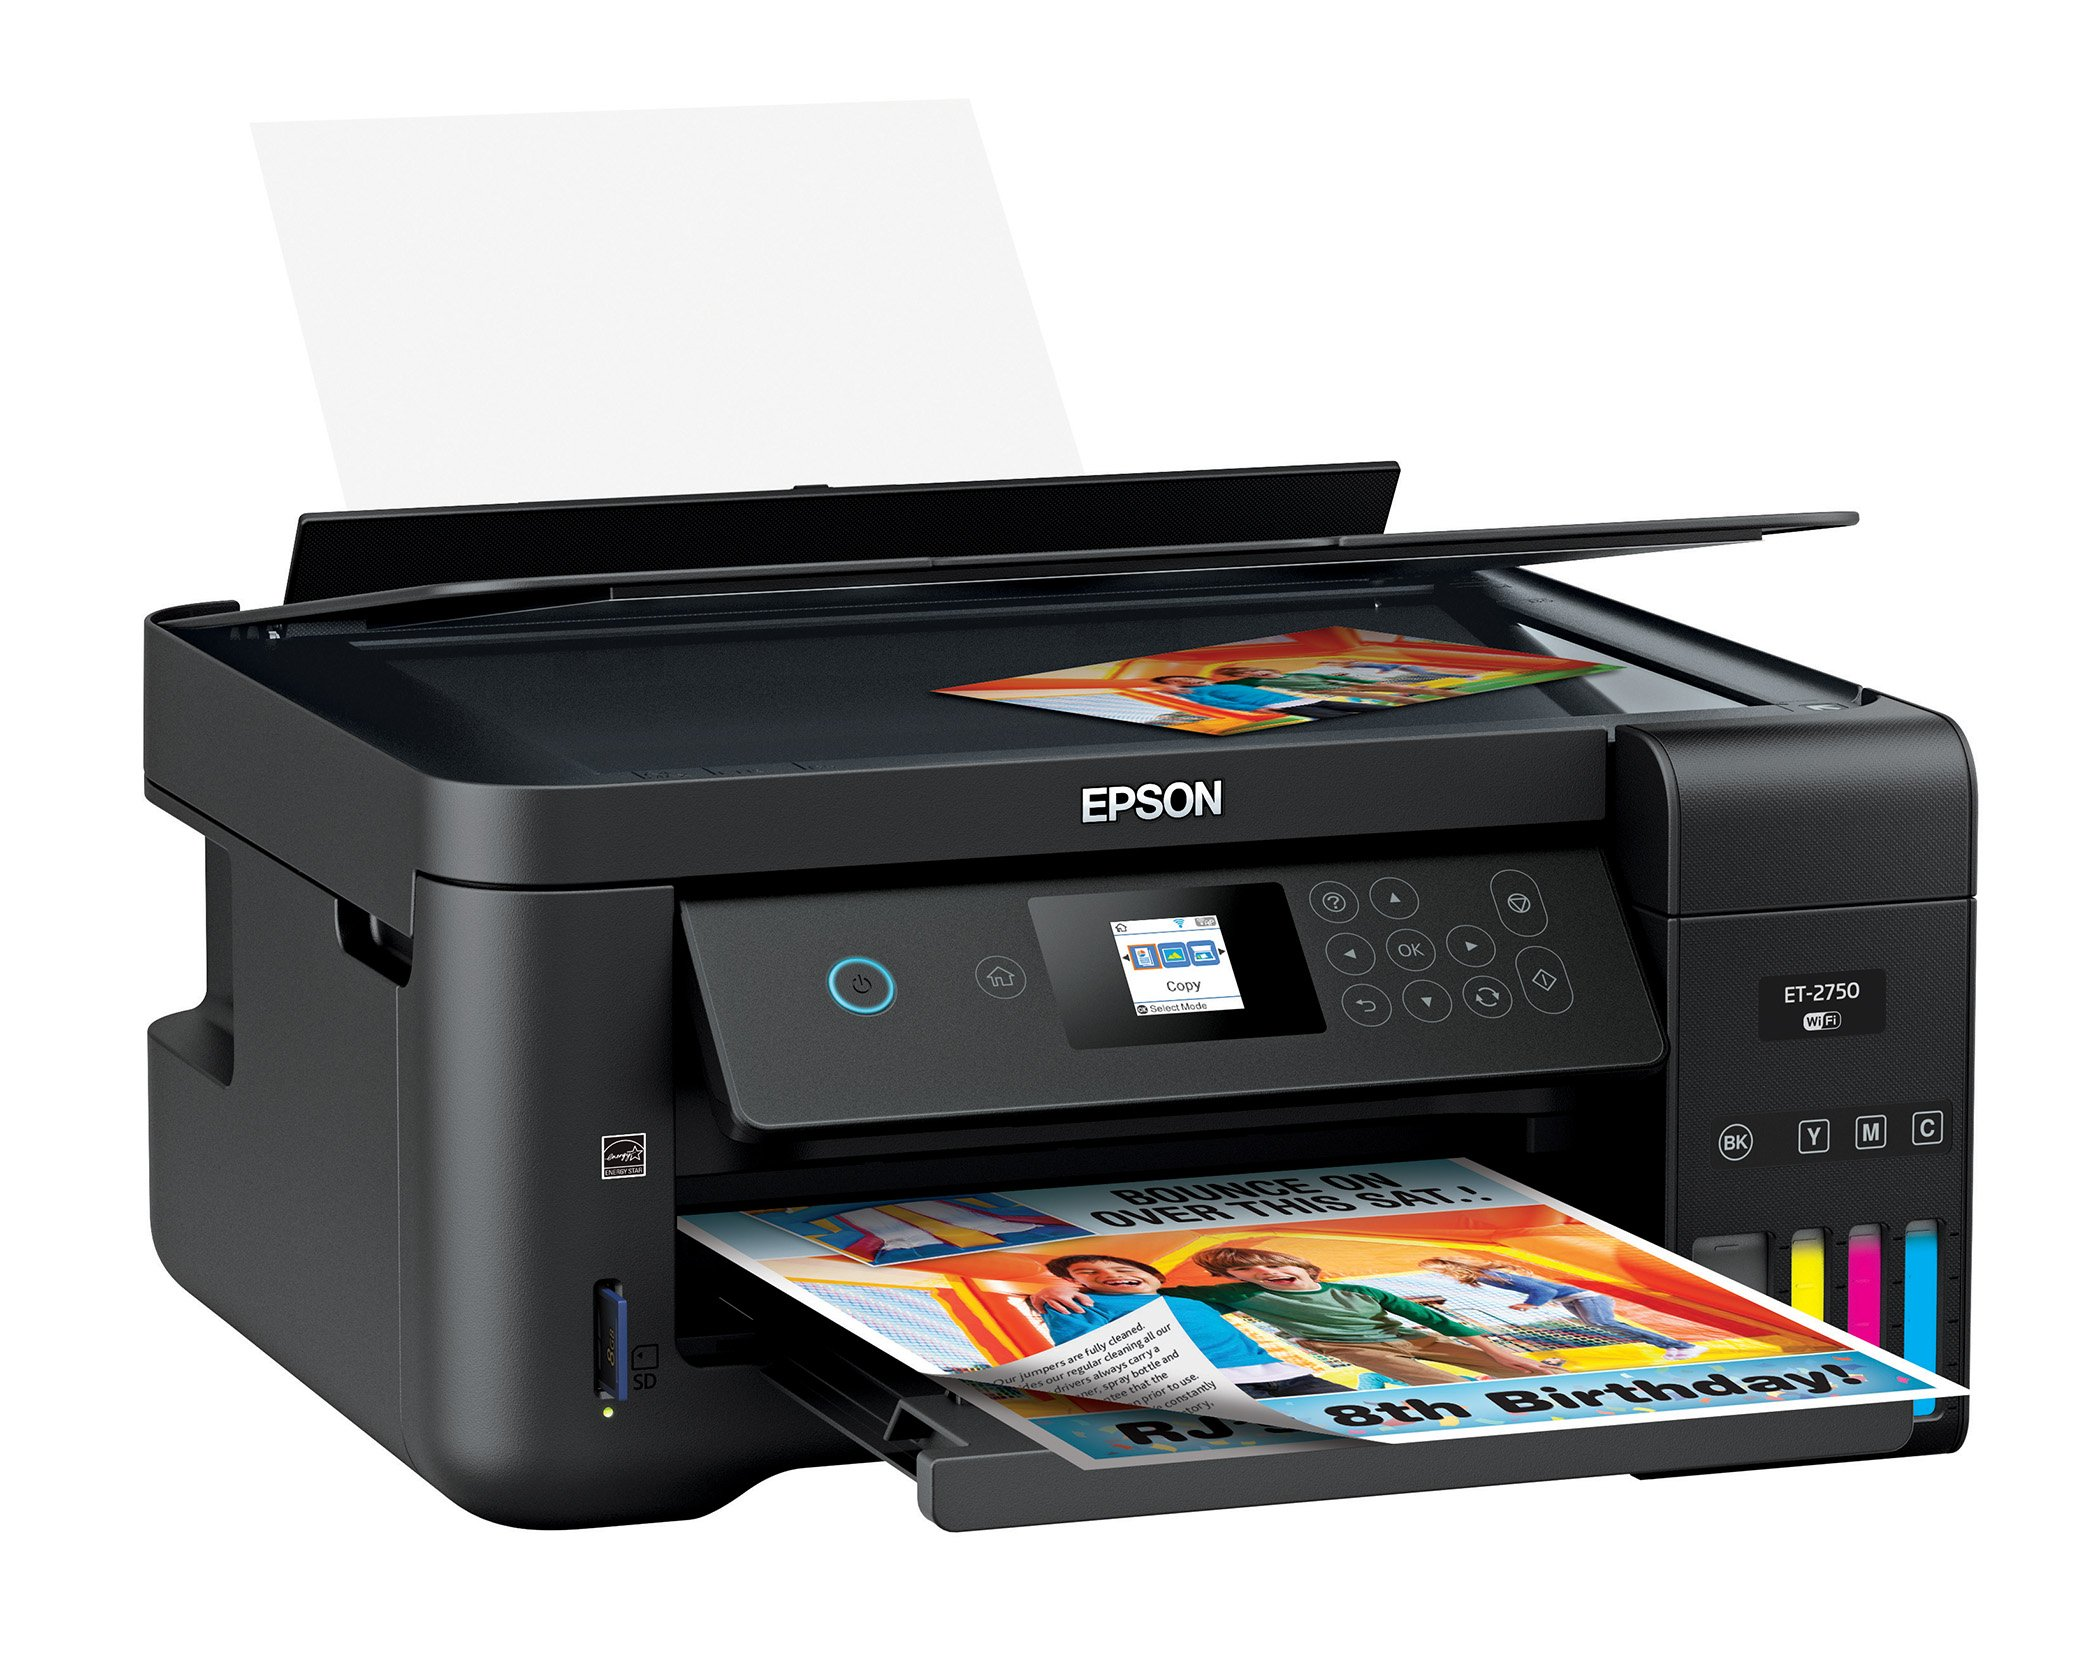 Epson Expression ET-2750 EcoTank Wireless Color All-in-One Supertank Printer with Scanner and Copier by Epson (Image #4)